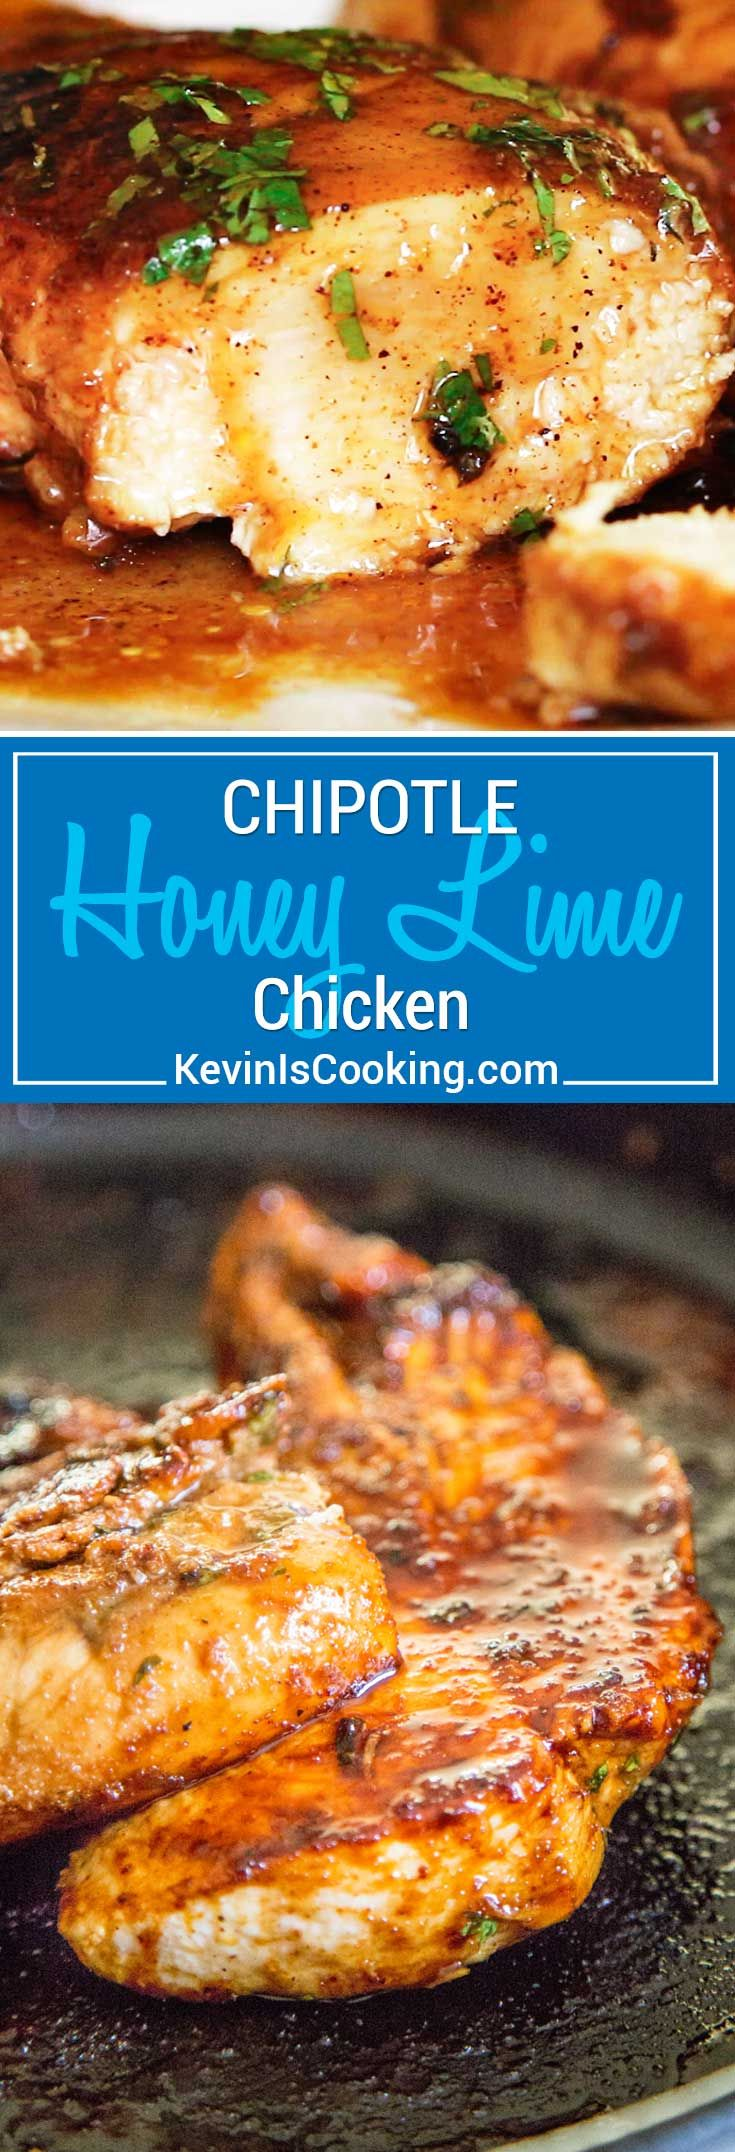 Chipotle Honey Lime Chicken - Kevin Is Cooking